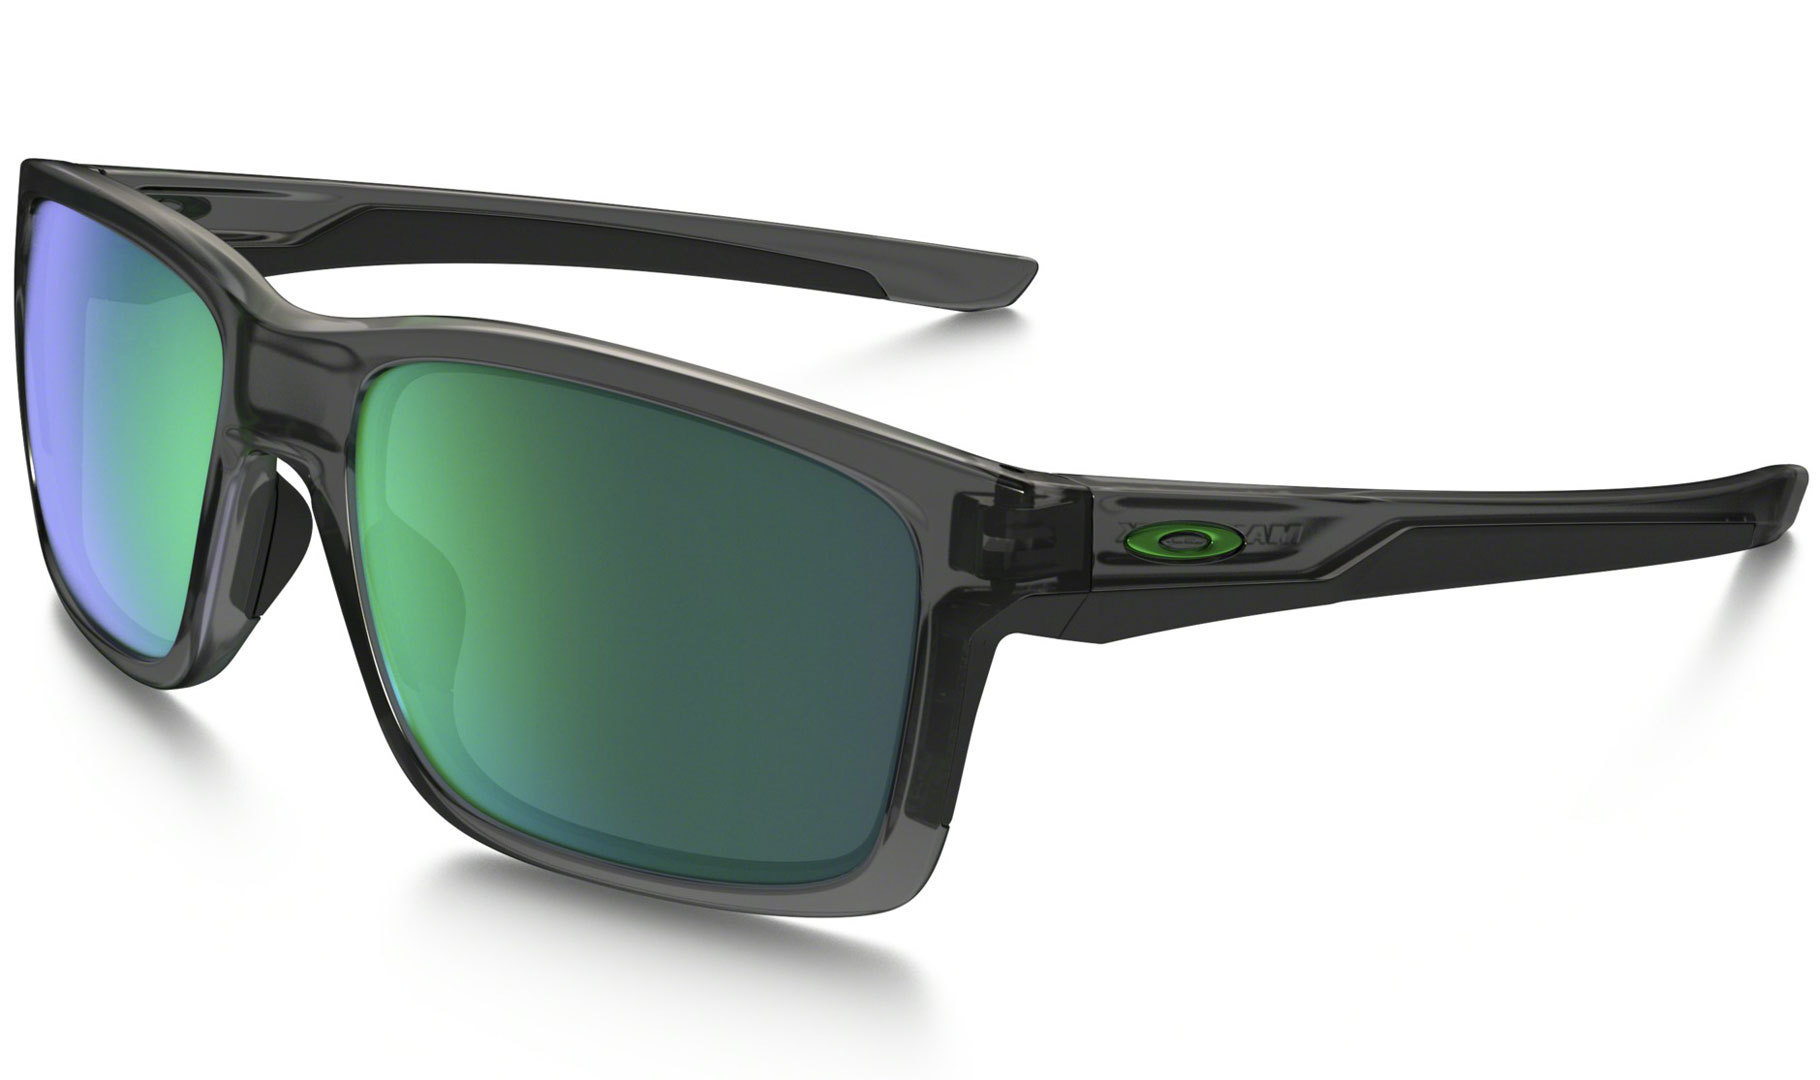 Grey Iridium Mainlink Protection Oakley Smoke Jade Lunettes De dBoCrxeW